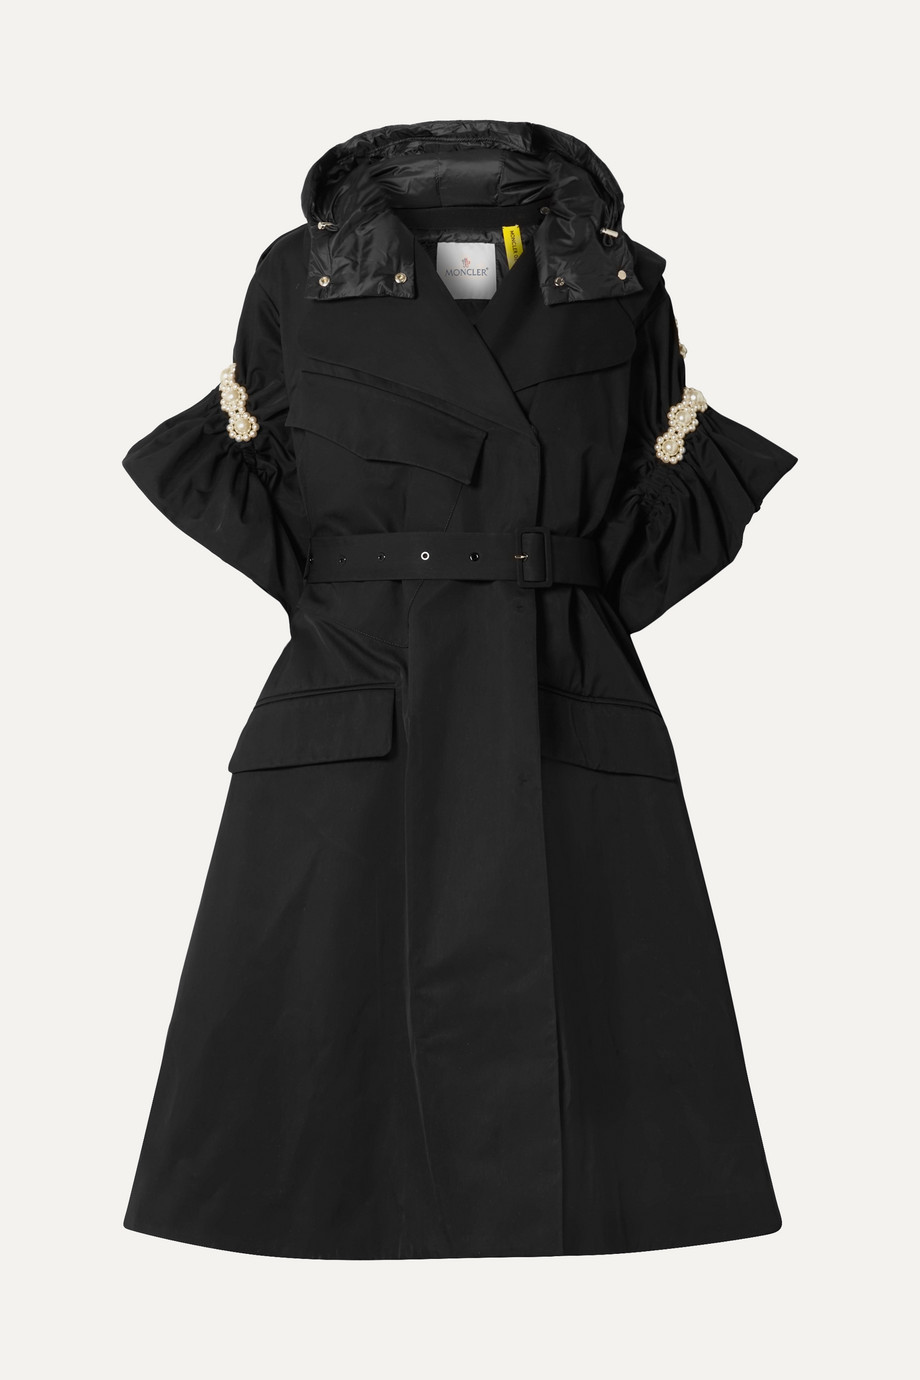 Moncler Genius + 4 Simone Rocha faux pearl-embellished shell trench coat